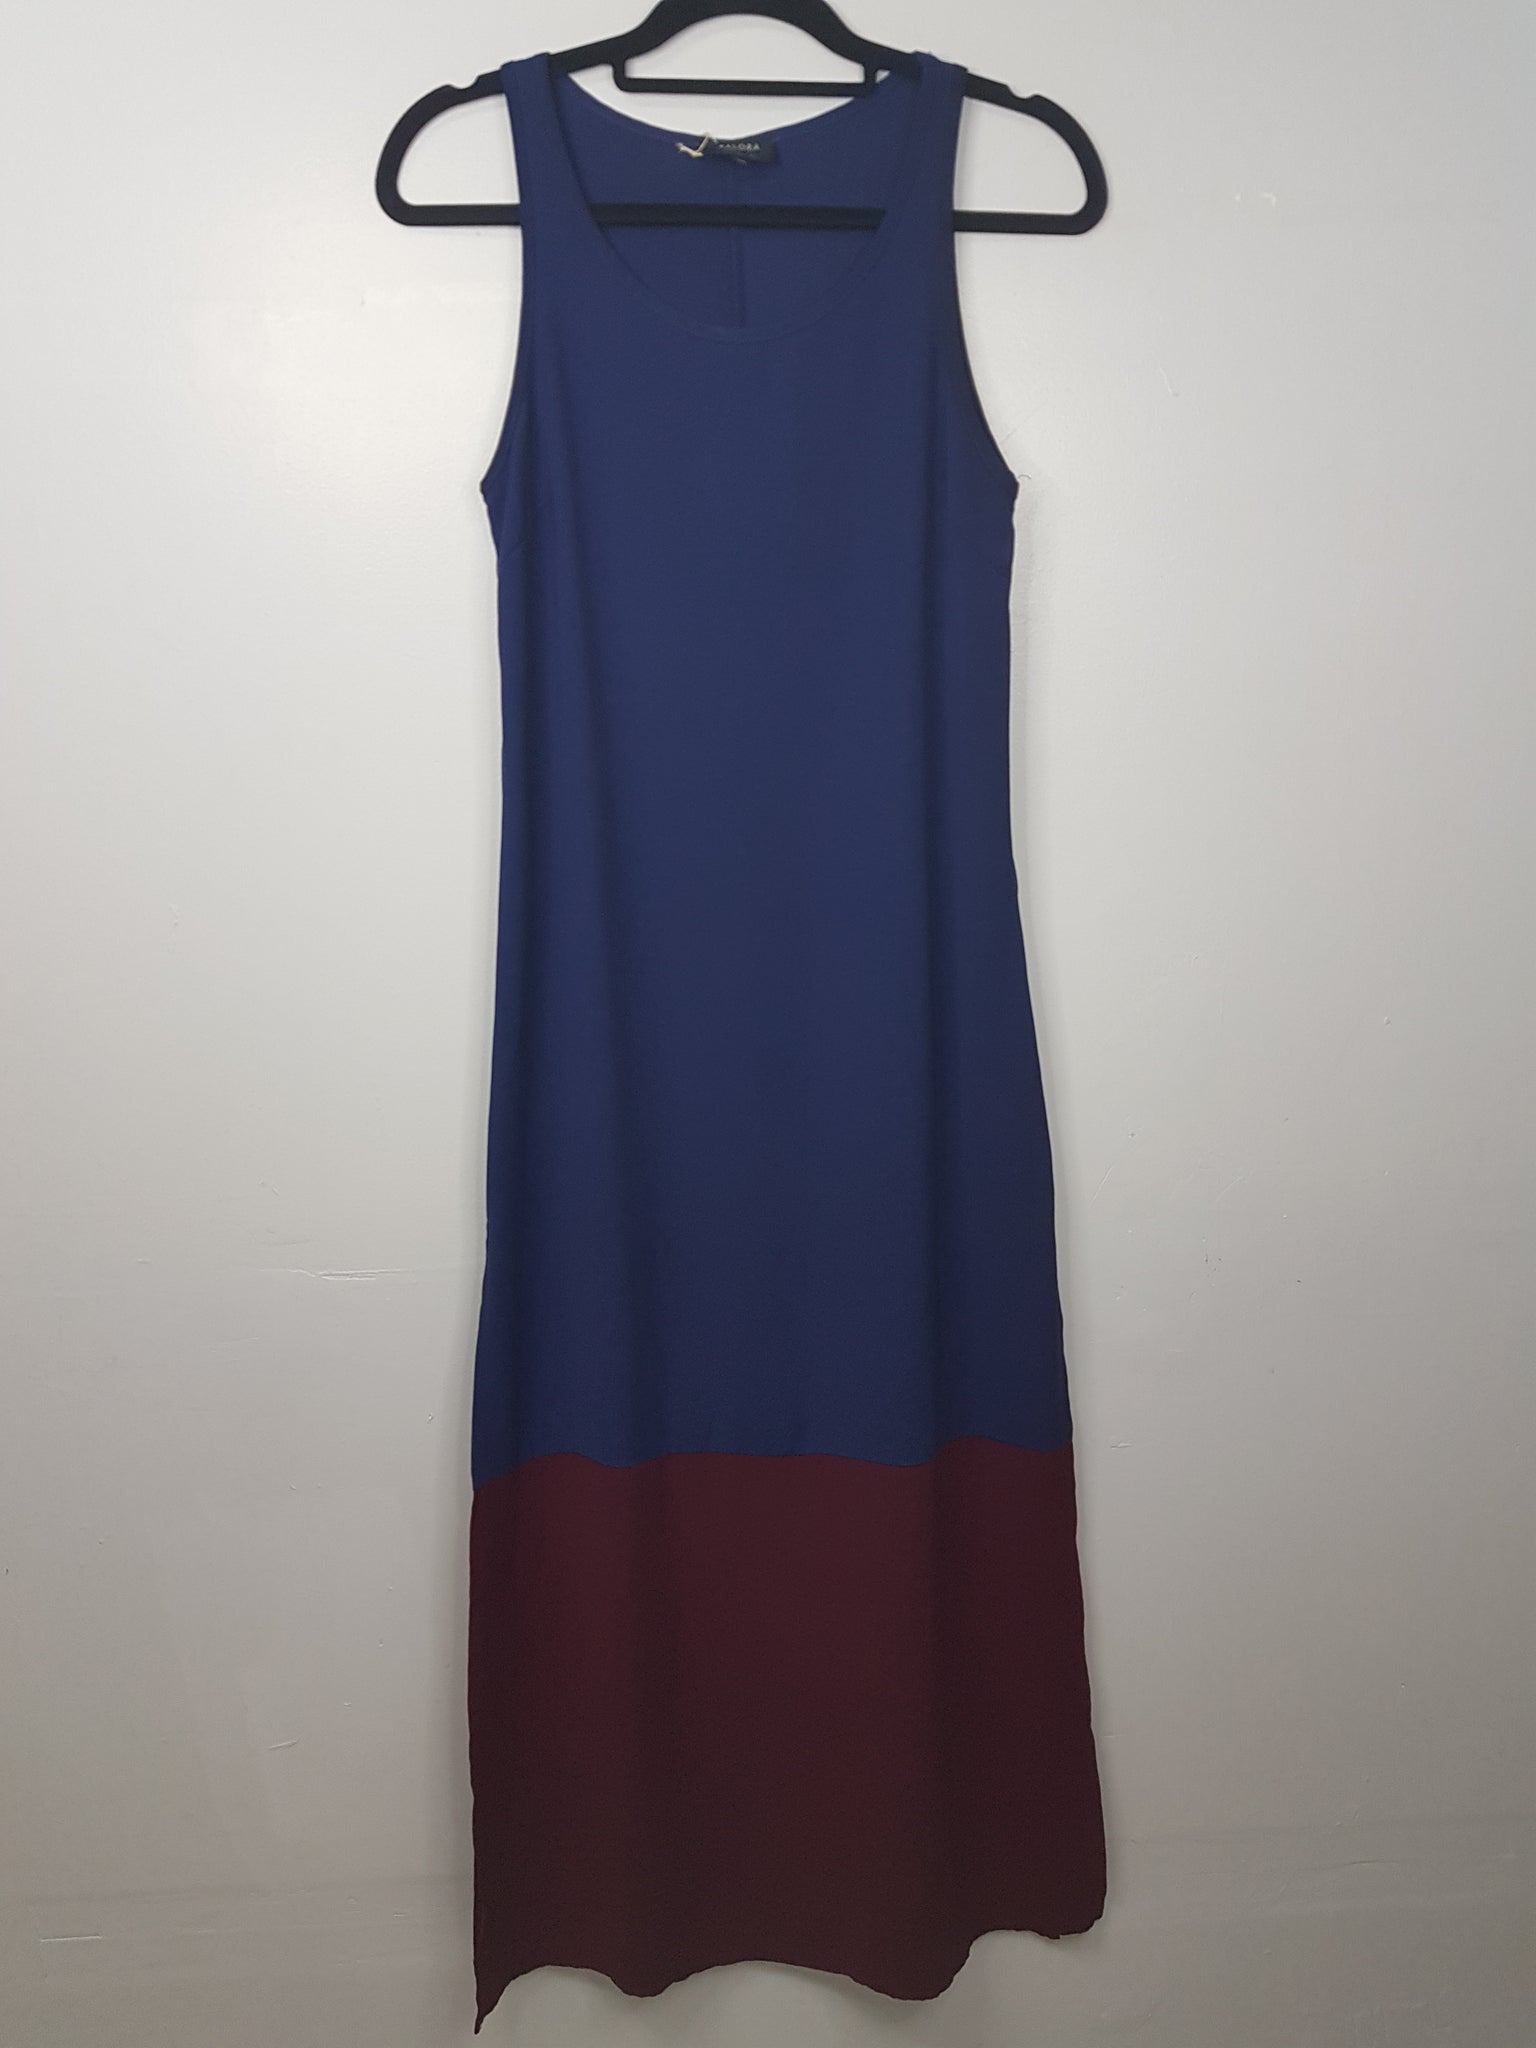 Zalora Blue Maxi Dress with Maroon Bottom and Side Slit